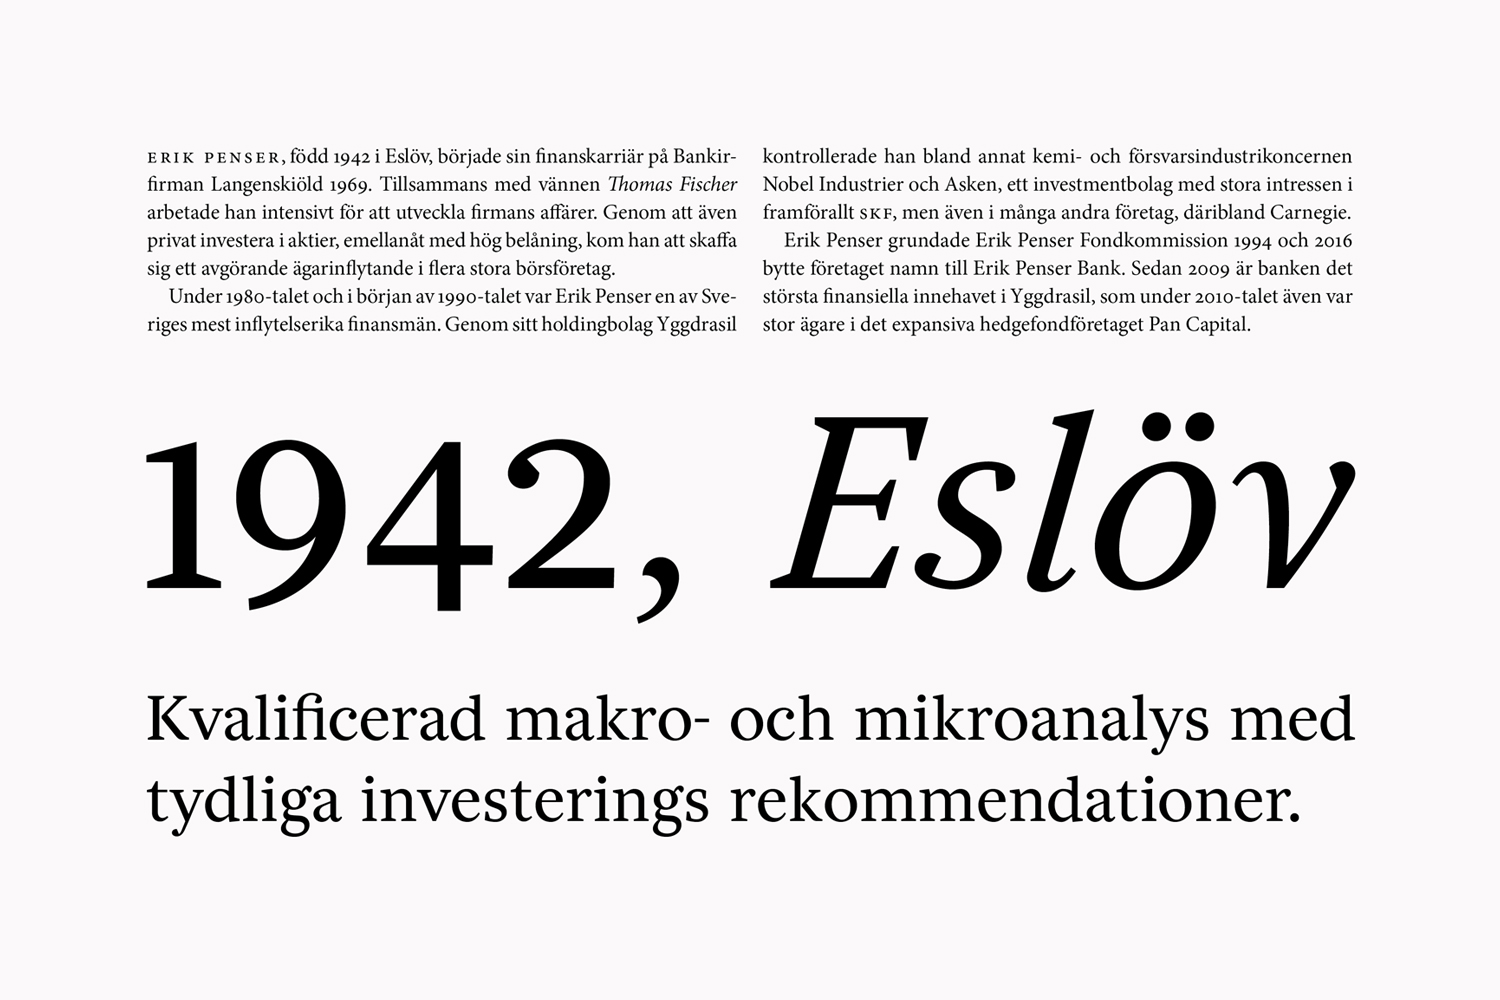 Typography for Sweden's leading private banking firm Erik Penser Bank designed by Bedow and Íñigo López Vázquez